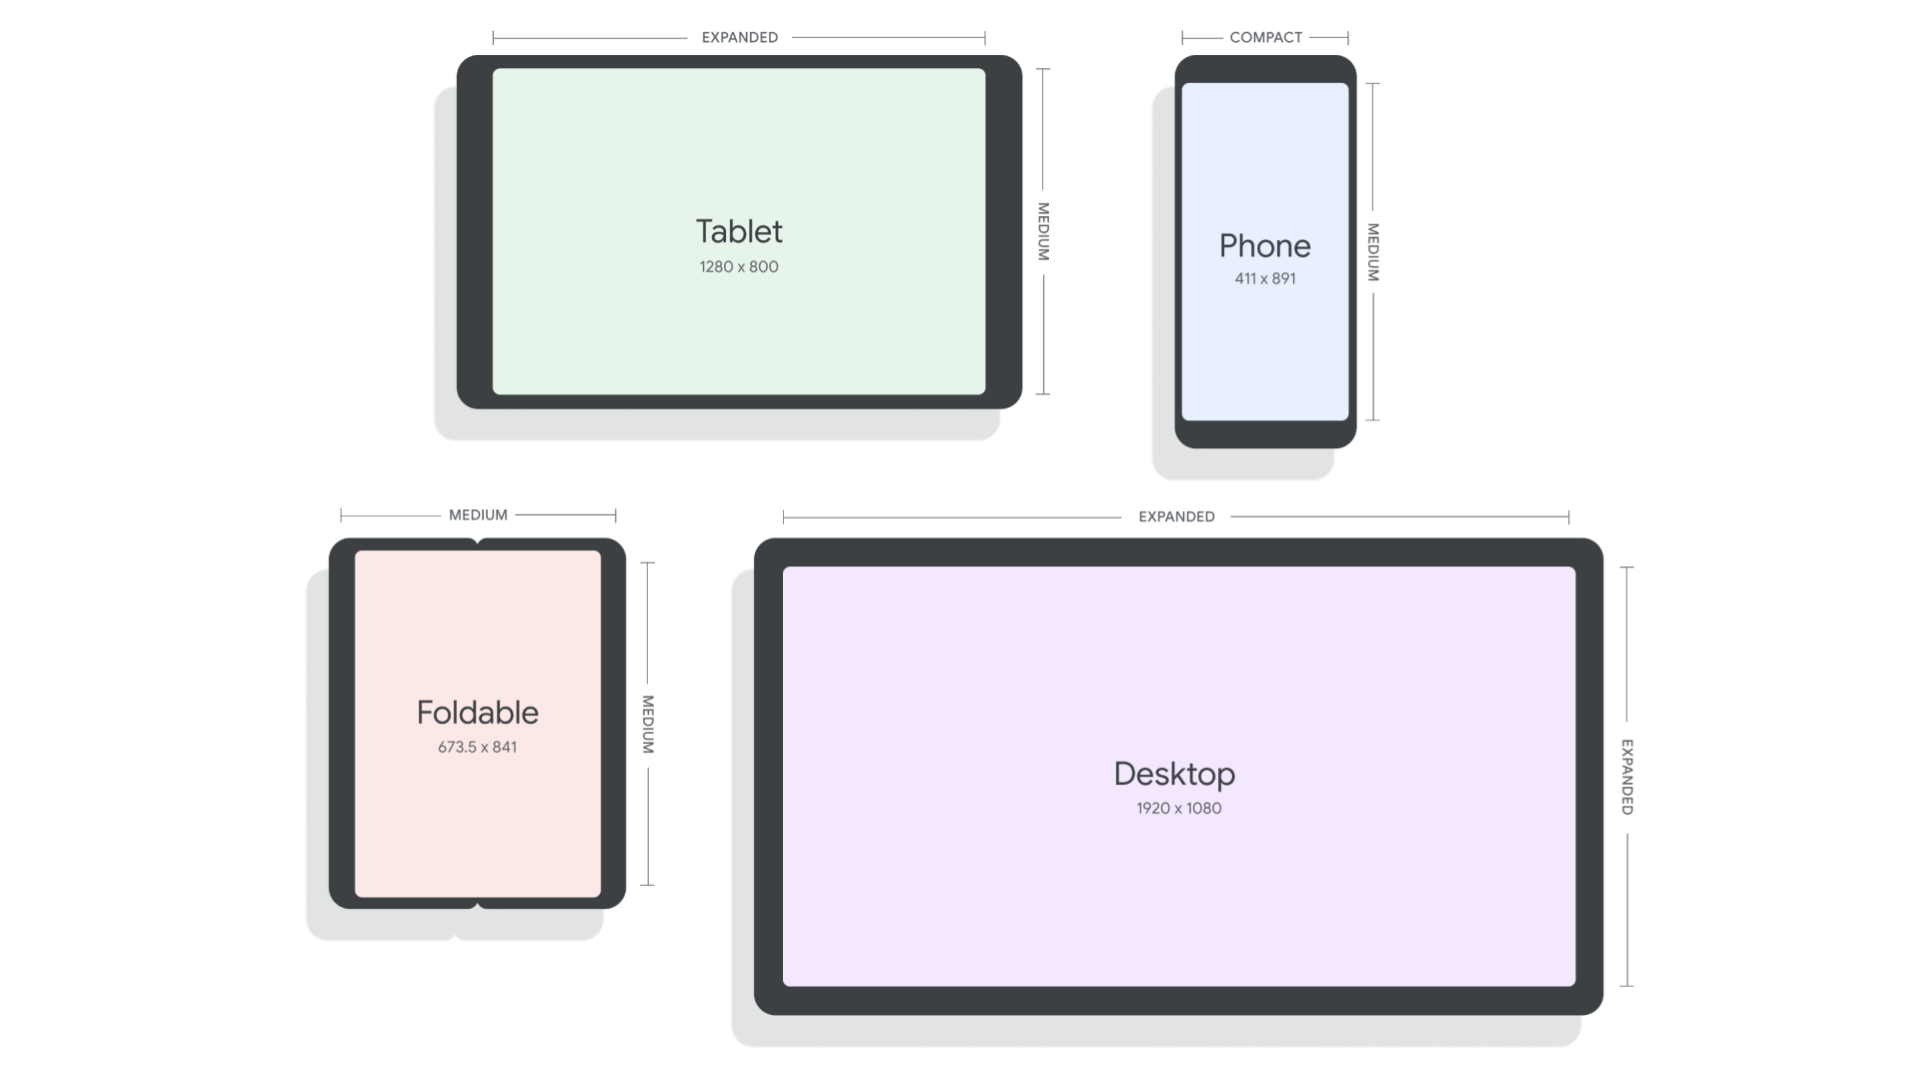 Image shows reference device definitions for a tablet, phone, foldable, and desktop sizes